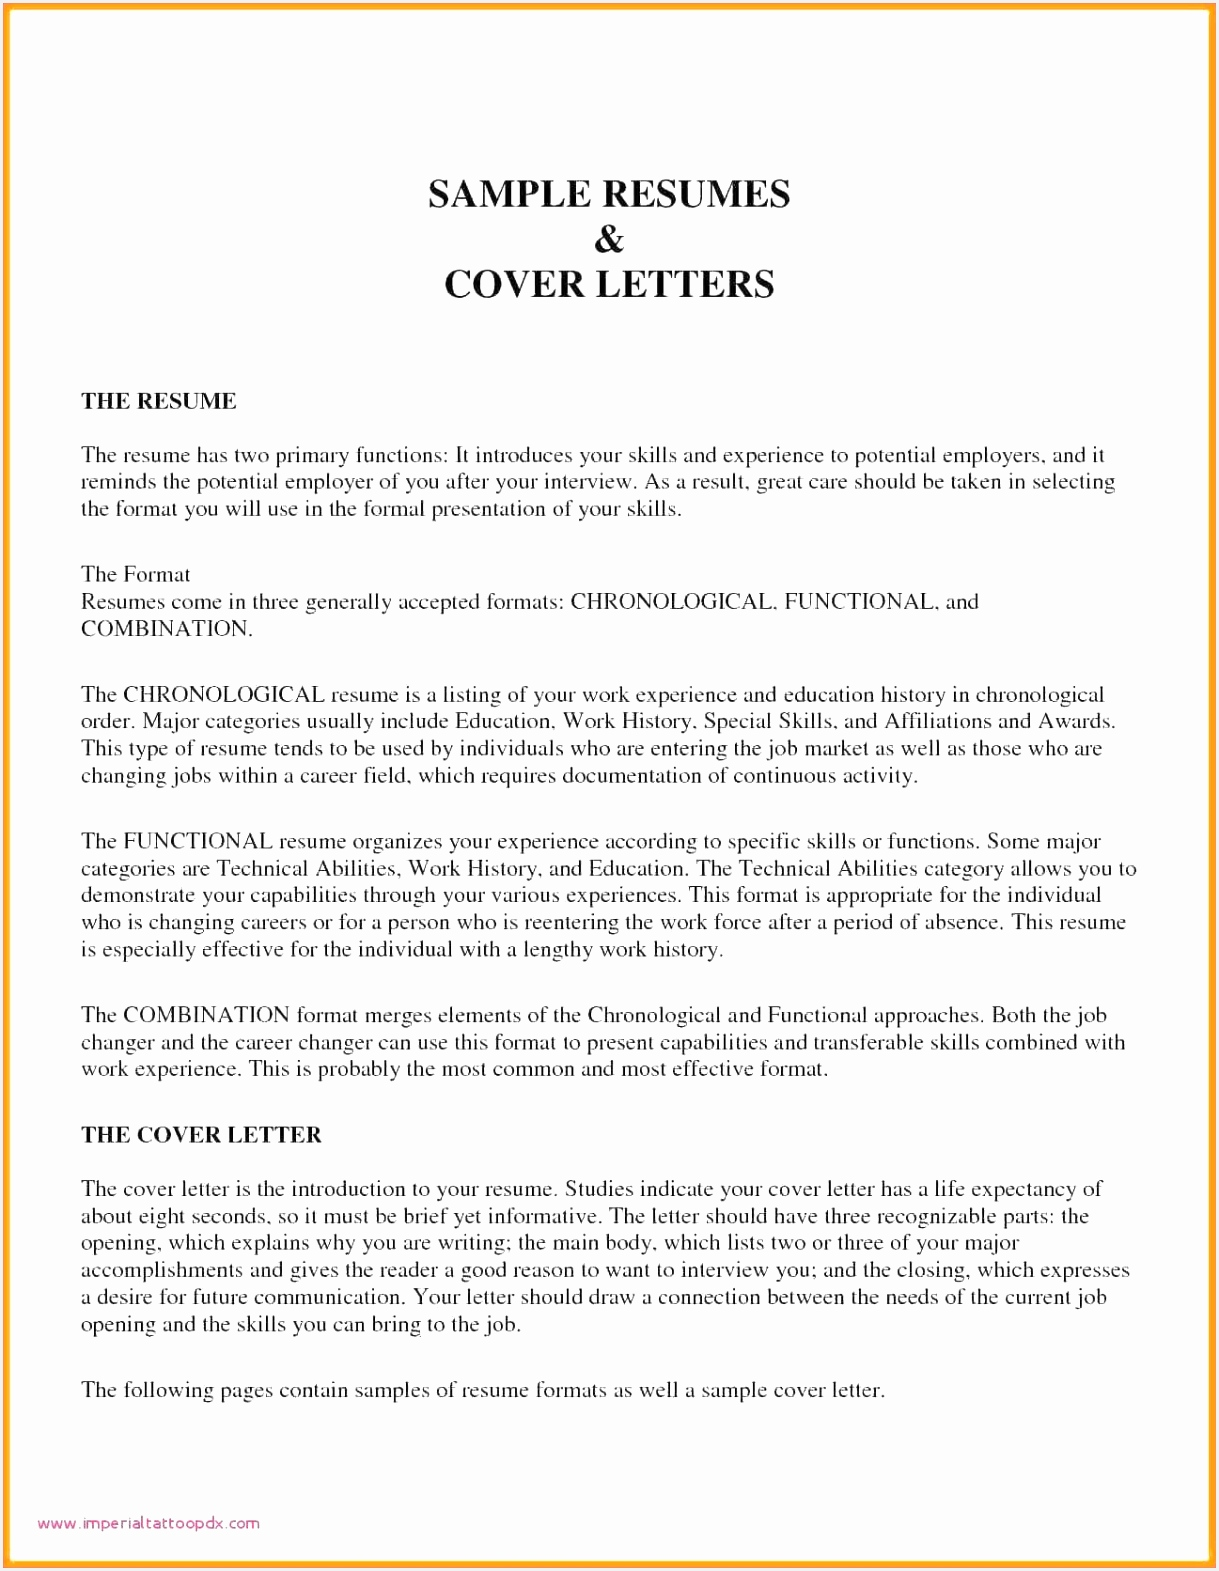 Resume Chronological format Labpr Beautiful Examples Cover Letters Generally Dental assistant Resume Template Of 5 Resume Chronological format